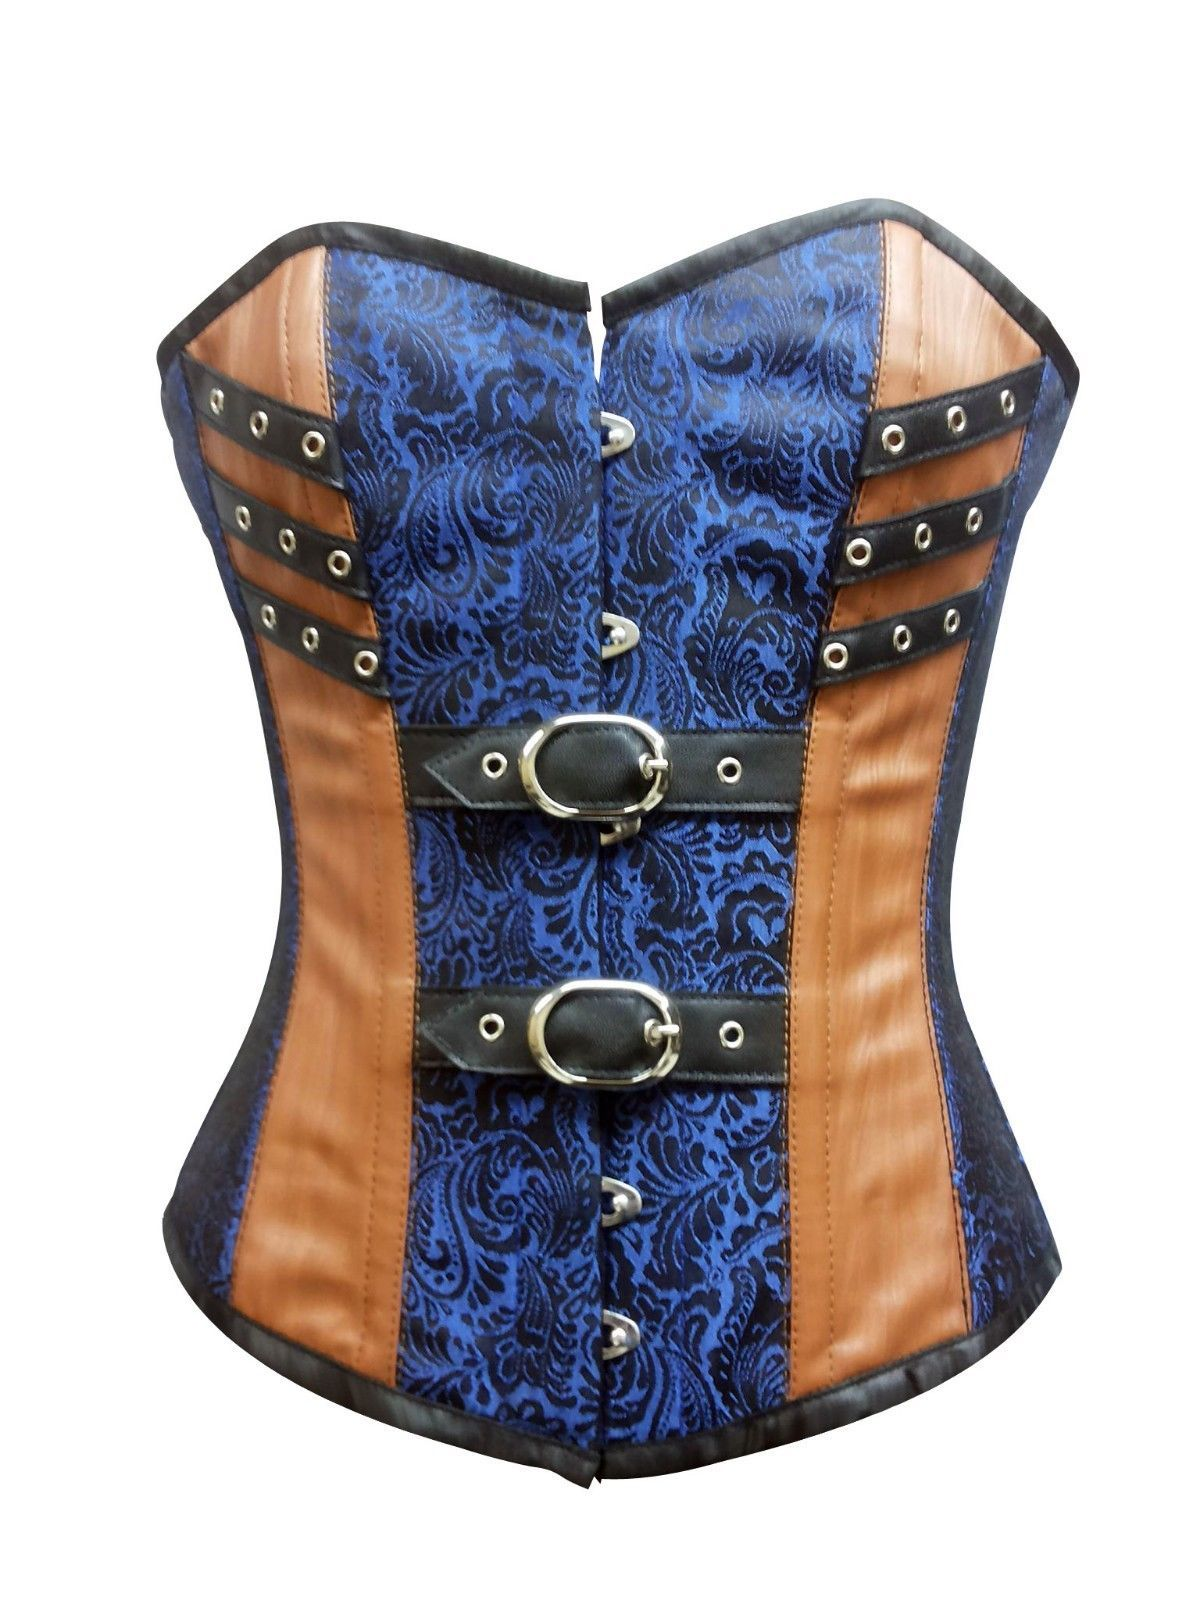 Blue Brocade Brown Leather GothicSteampunk Bustier WaistTraining Overbust Corset